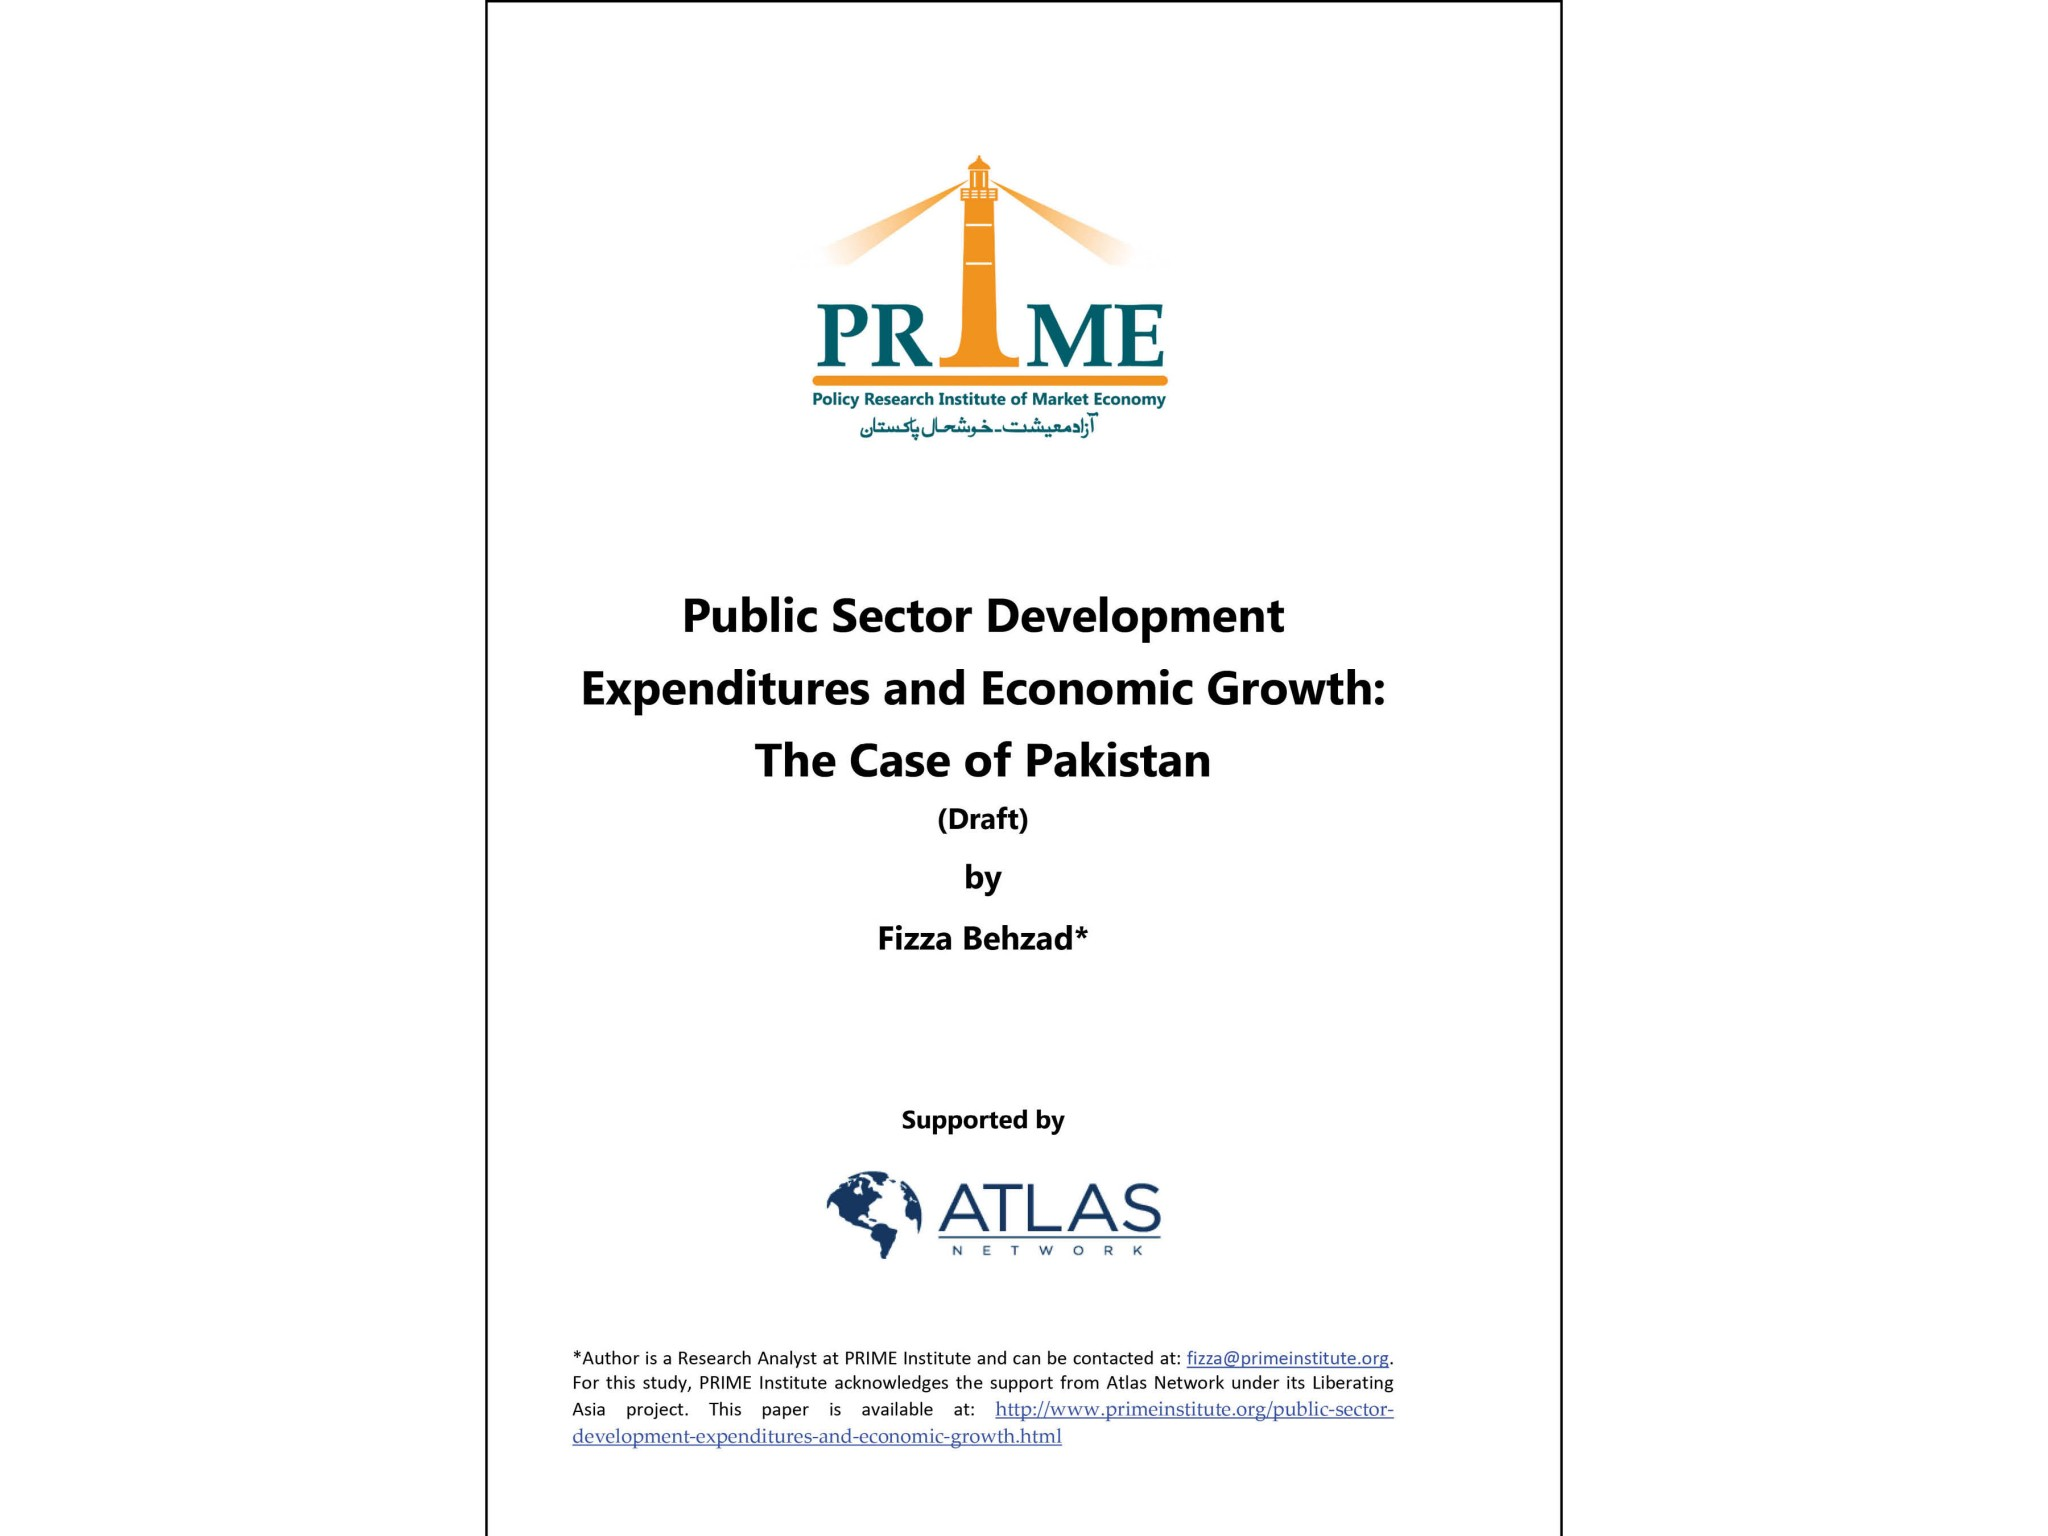 research papers on development economics View development economics research papers on academiaedu for free the mdrm-model was applied on the economies of people's republic of china (prc) and us to analyze the process of gdp formation accumulation in the last past forty years in both economies.